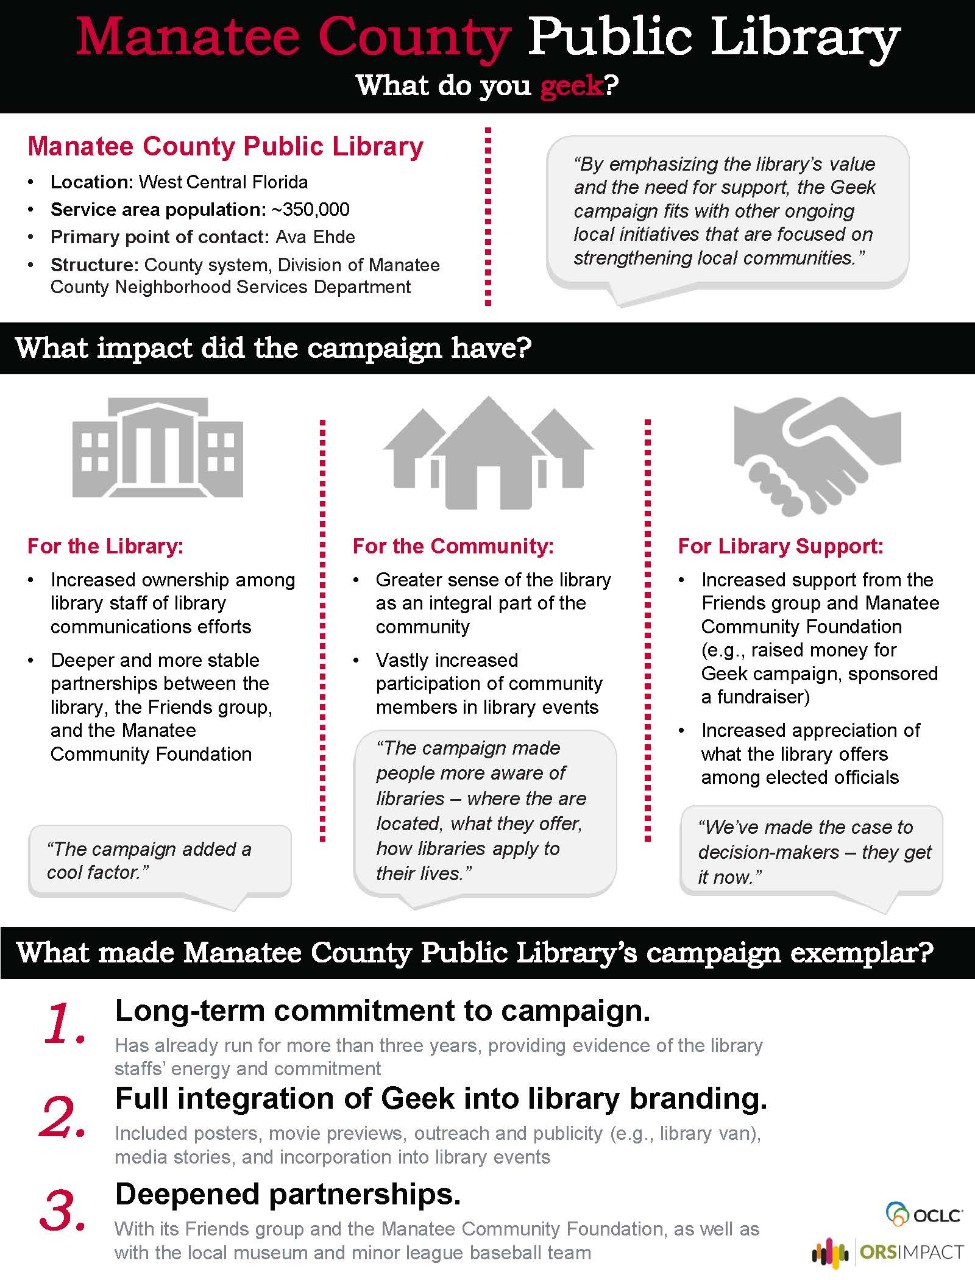 Summary of Manatee County Public Library case study